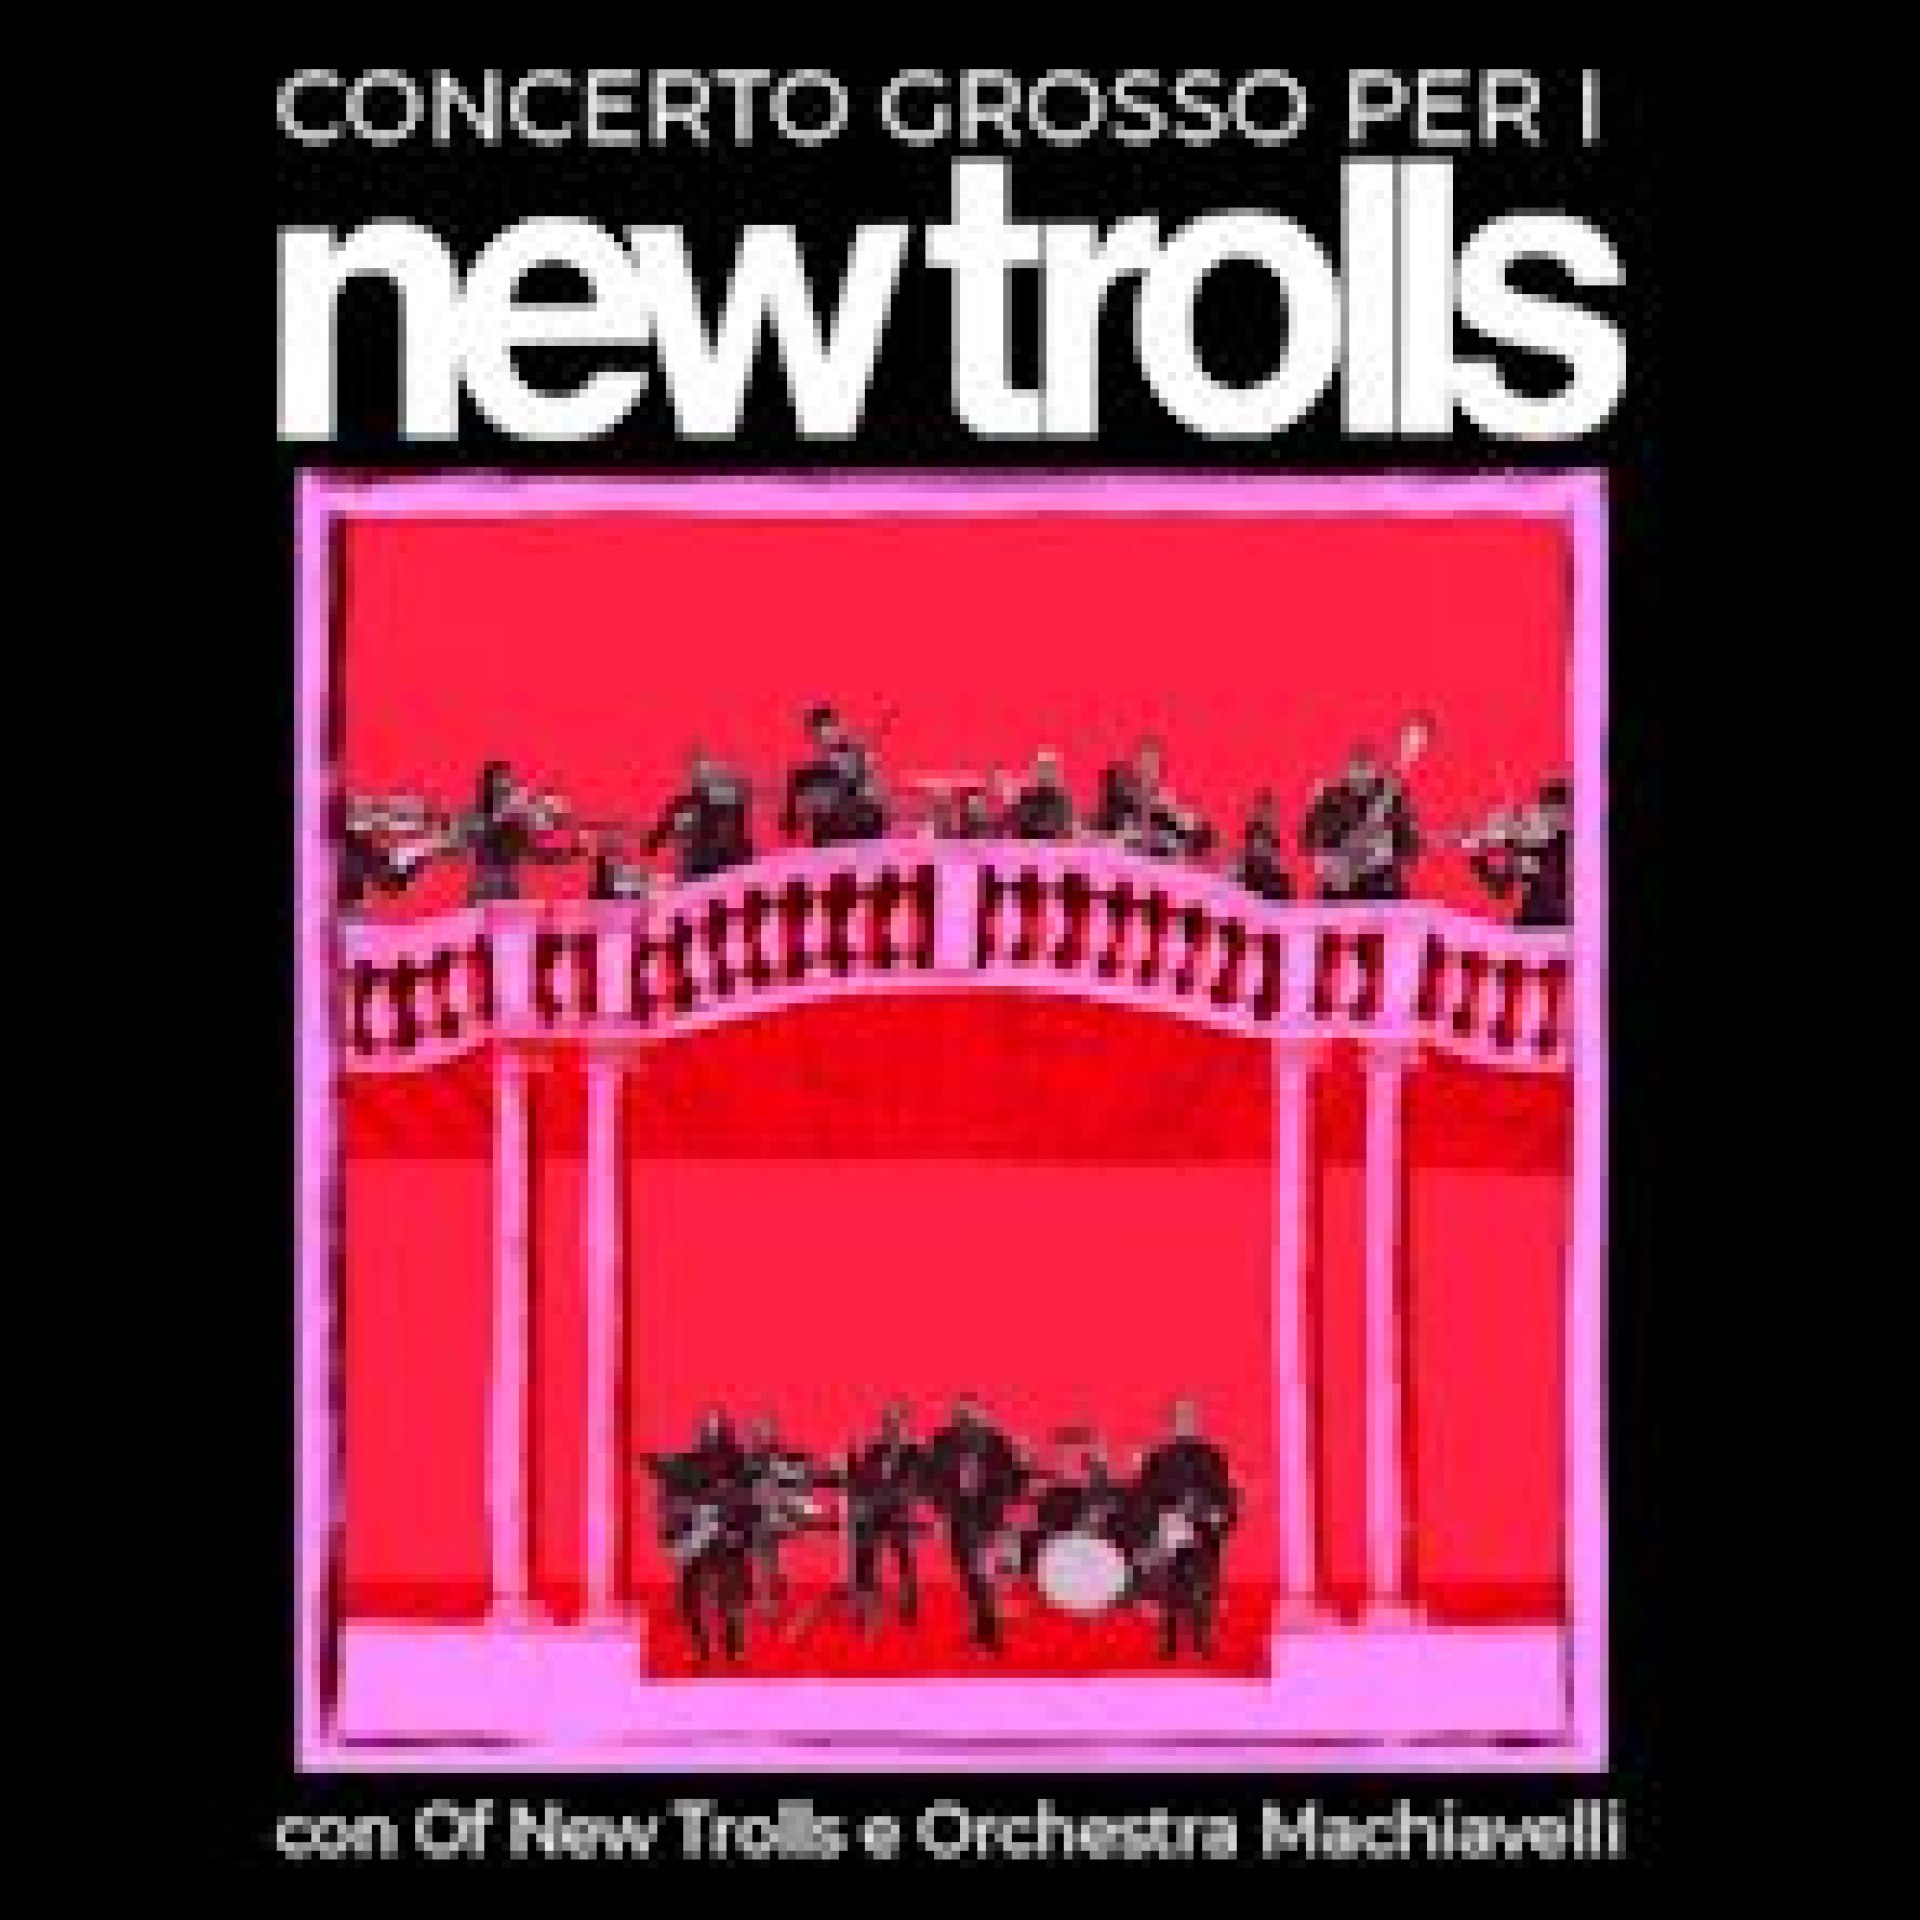 Of New Trolls and Orchestra Machiavelli